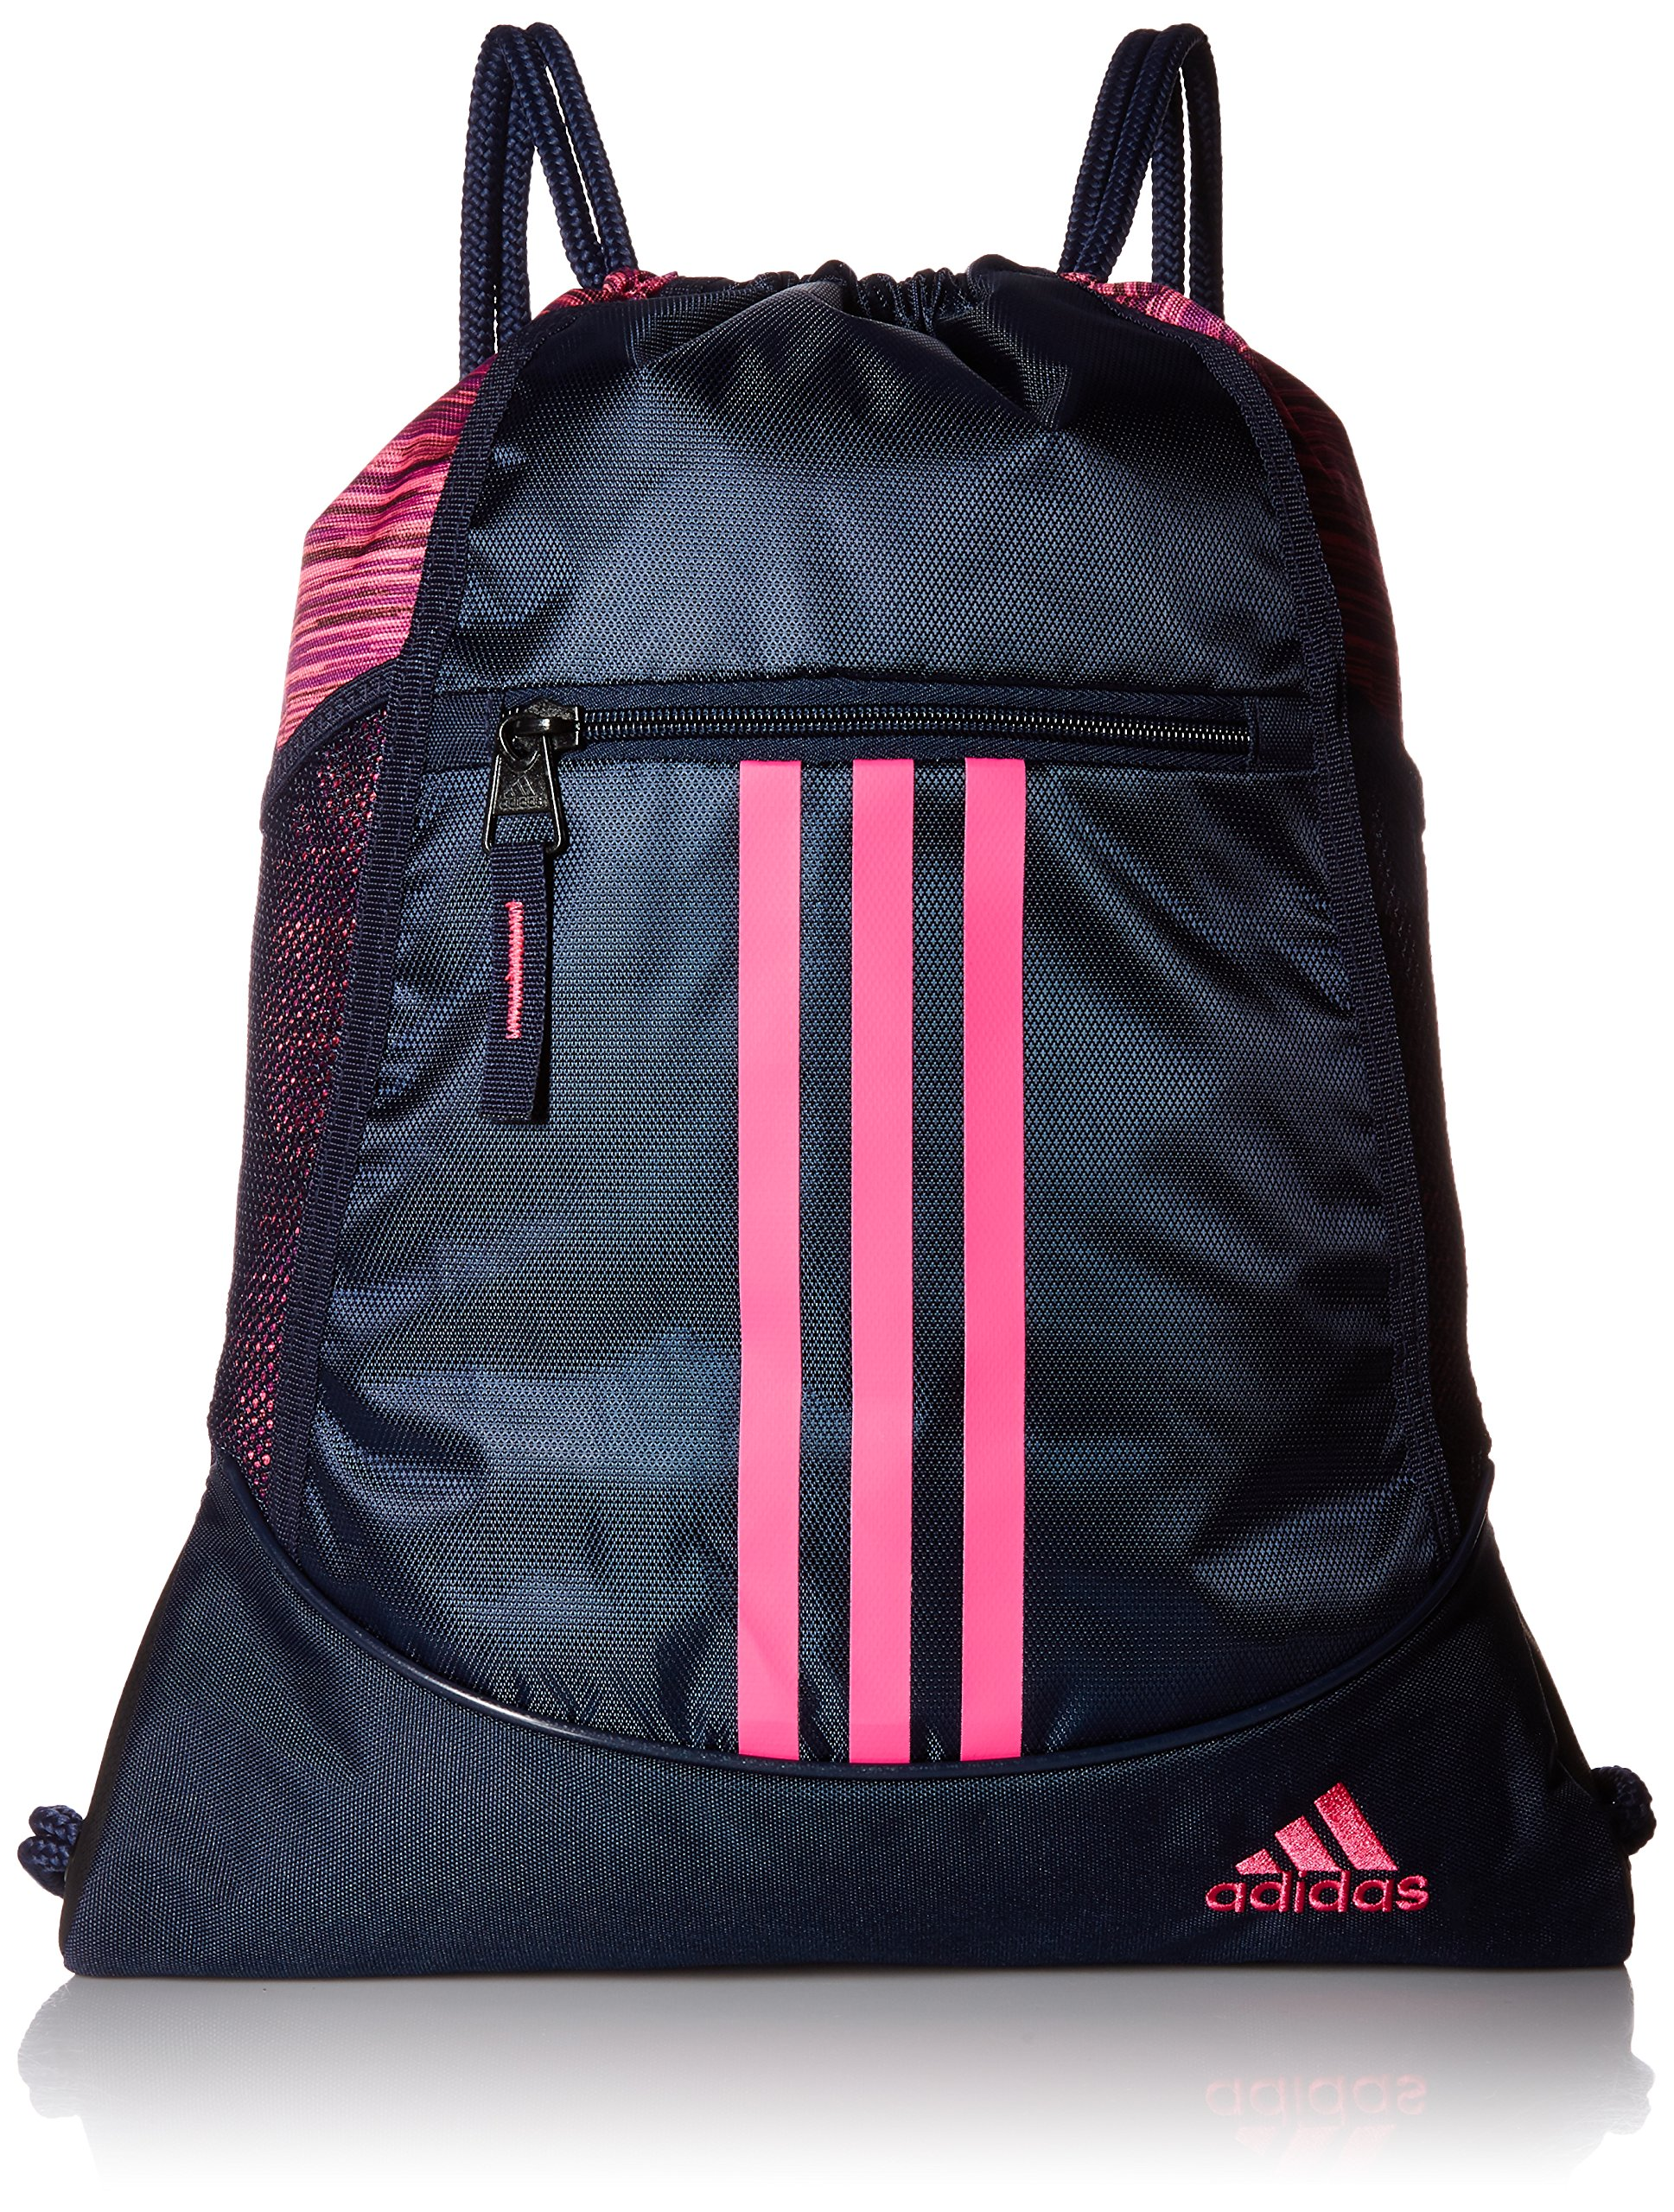 adidas Alliance II Sackpack, Collegiate Navy/Shock Pink, One Size